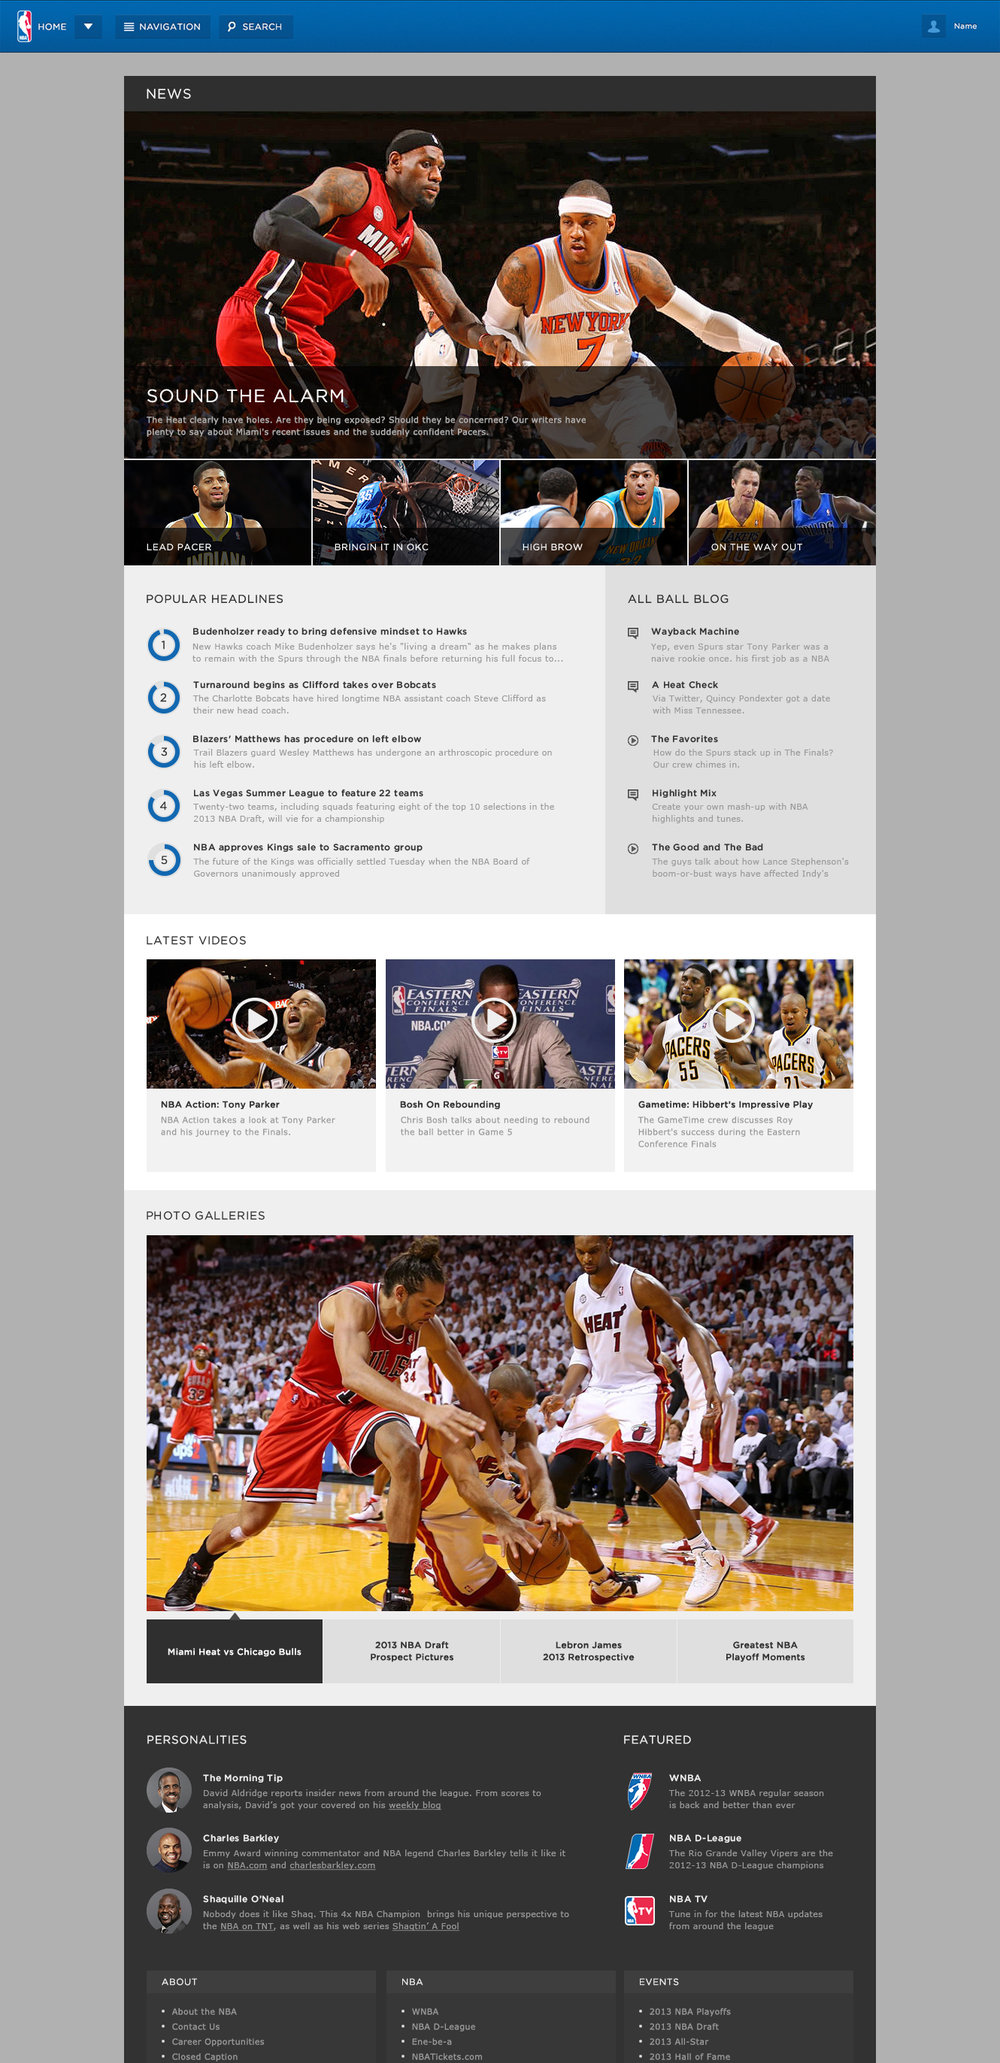 NBAcom_Redesign_NewsMain_V2.jpg